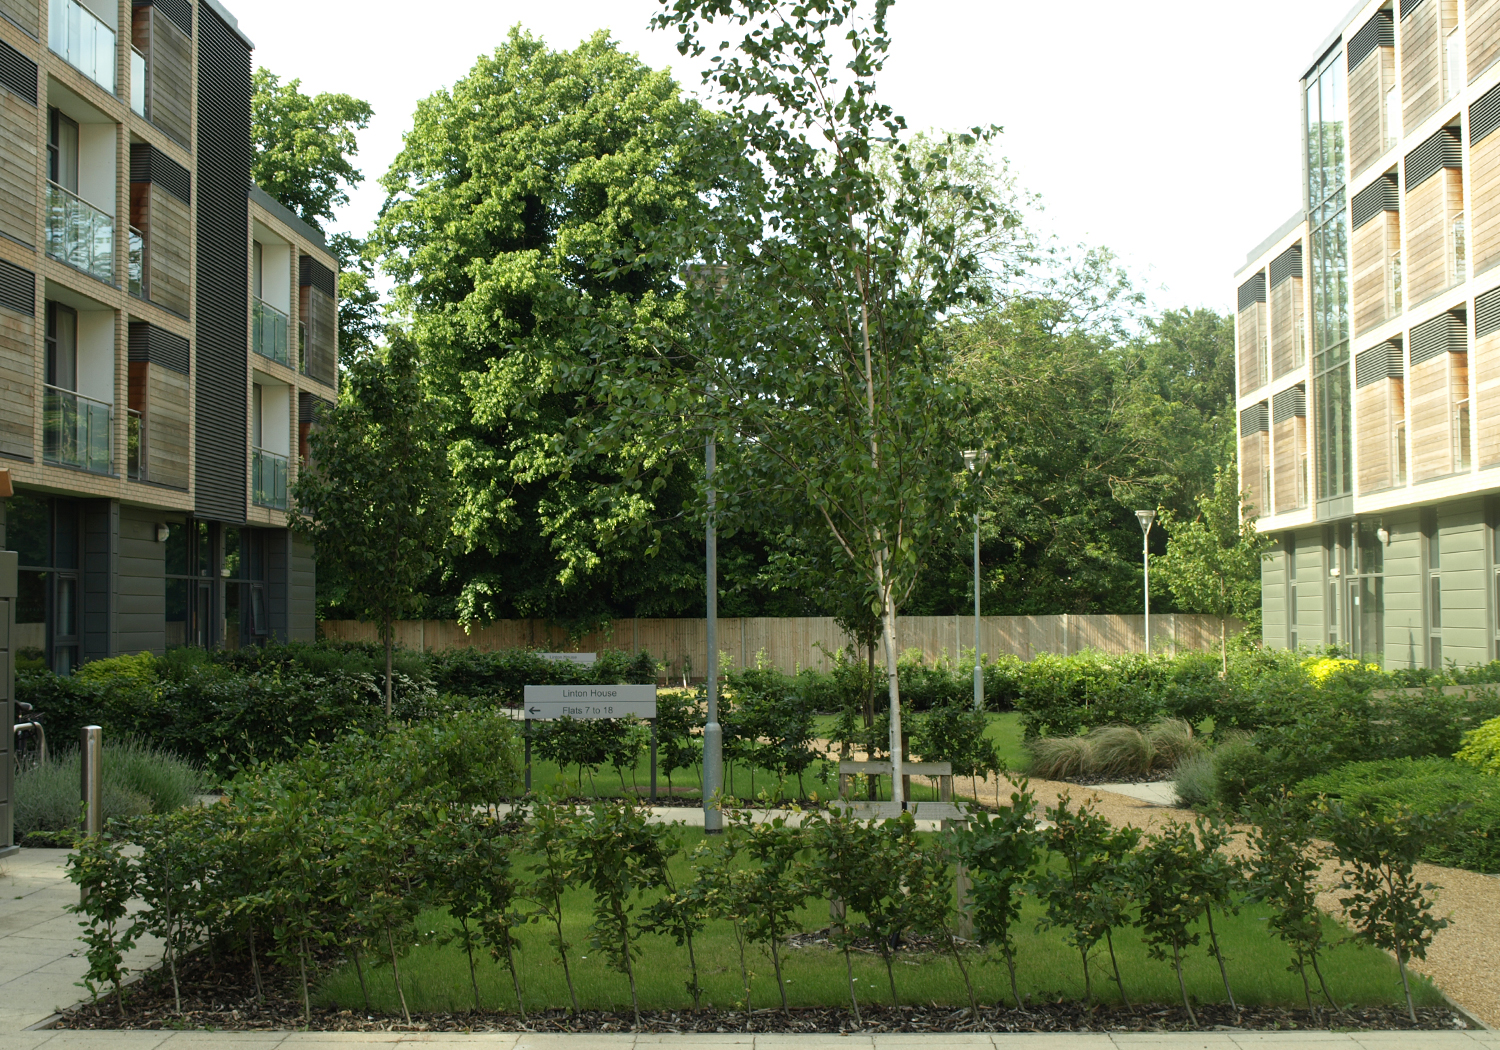 Projects-CareHospitality-Addenbrookes-Courtyard-1500x1050